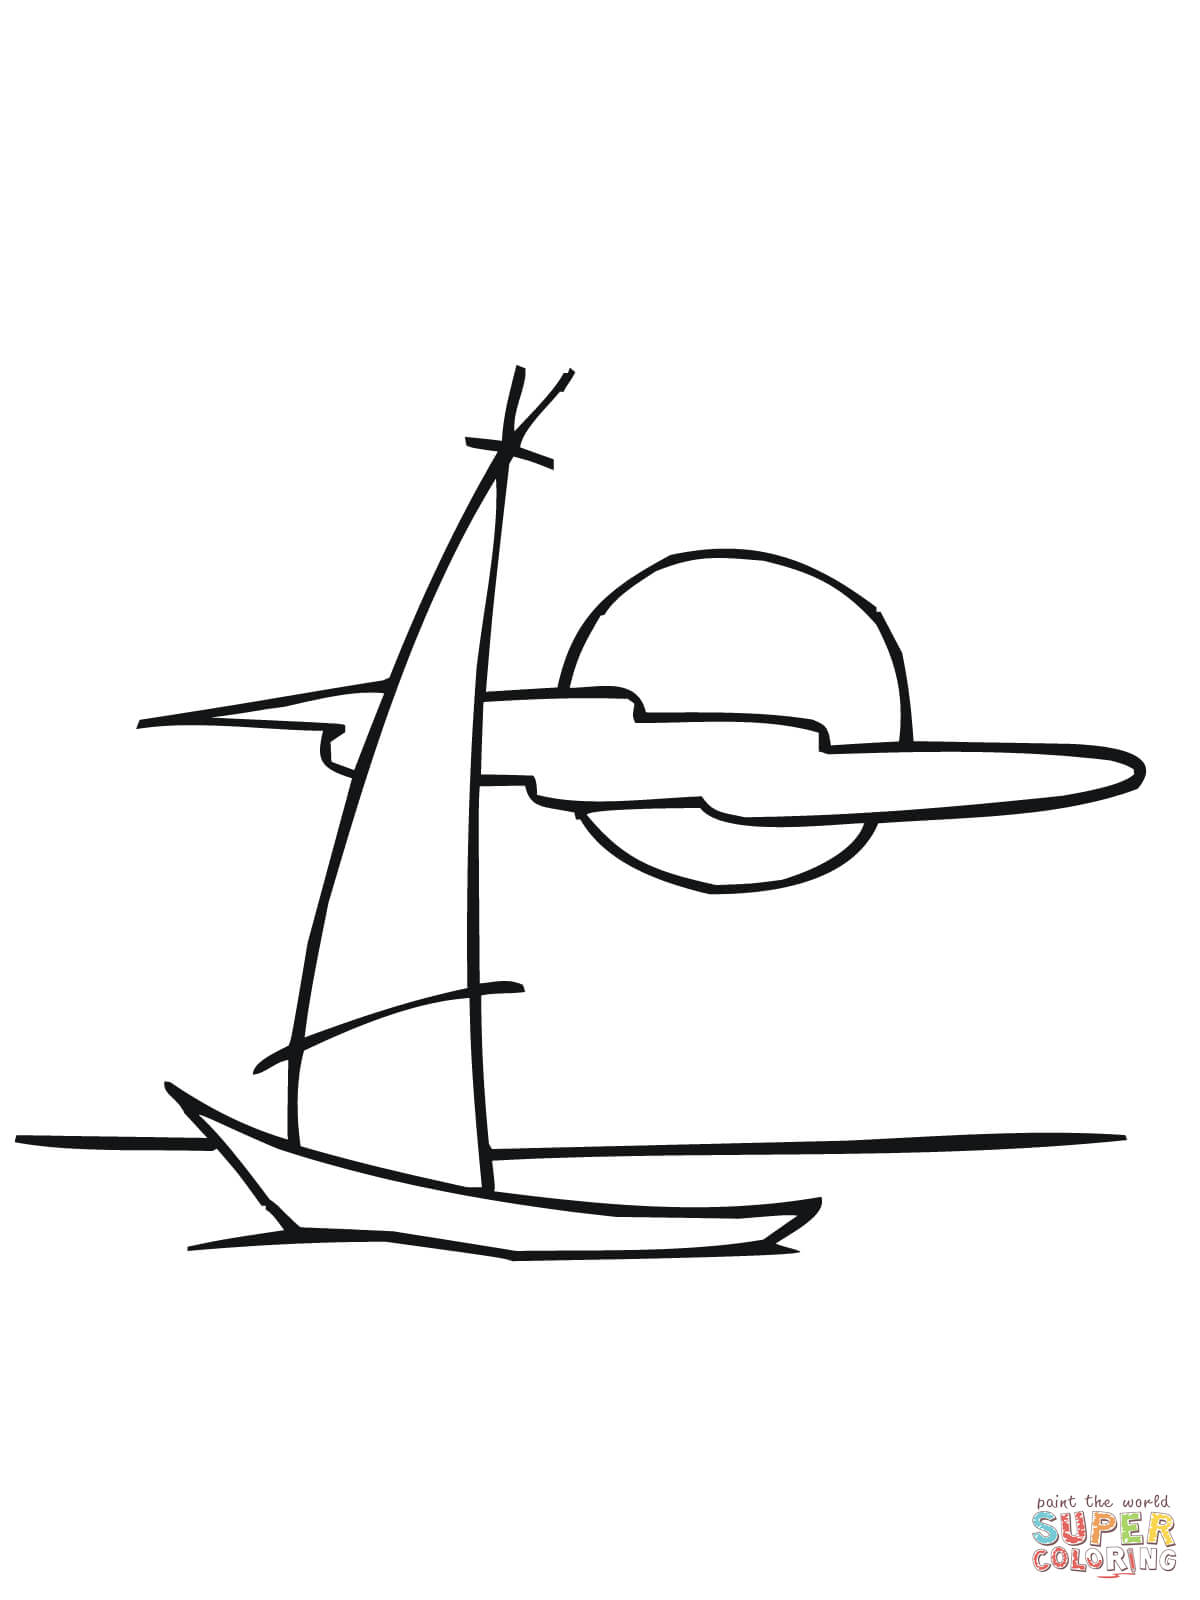 Sailing Dinghy Boat Coloring Page